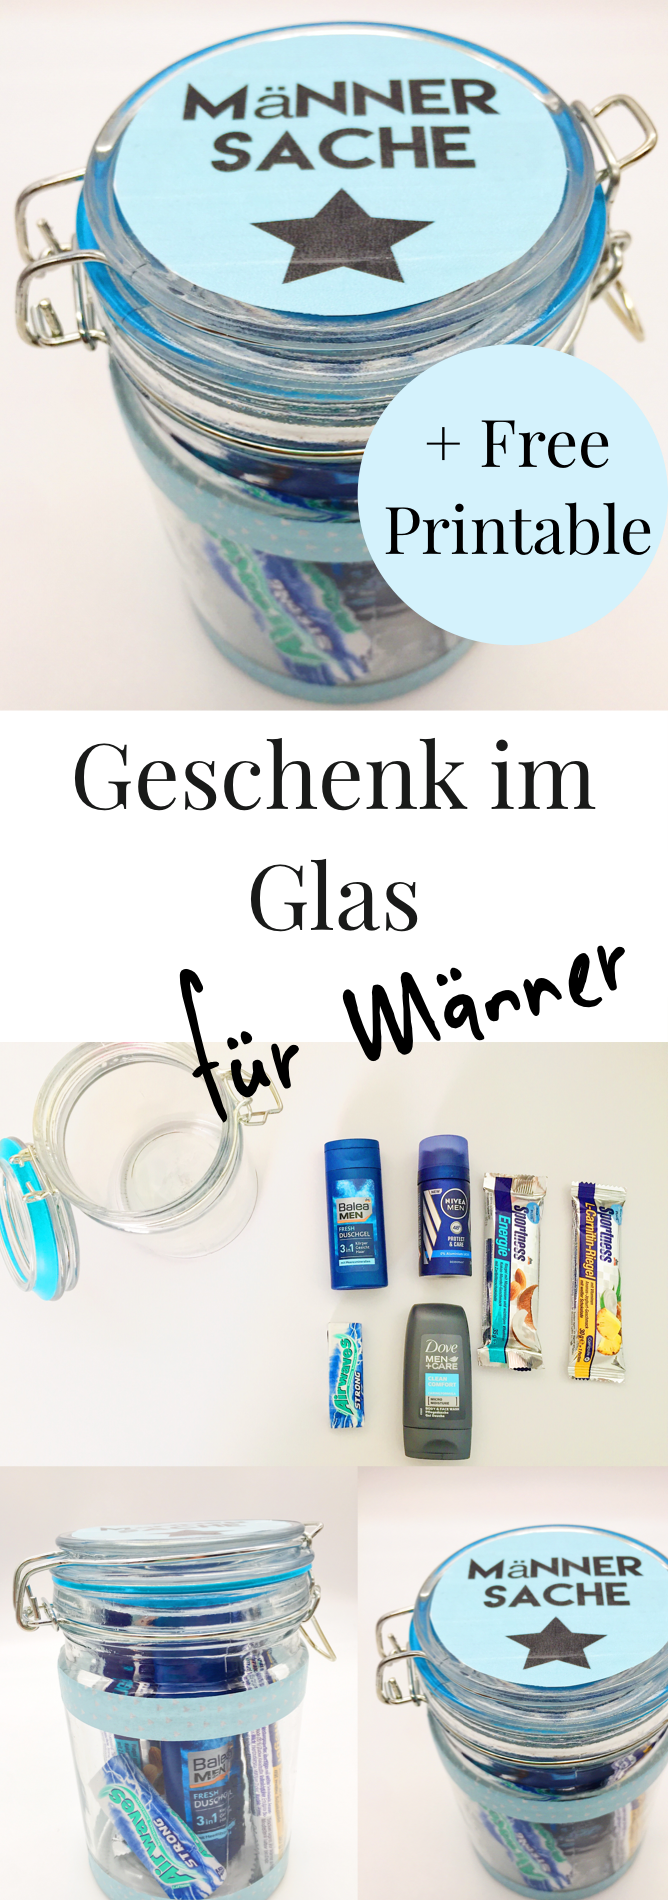 diy geschenke im glas selber machen kreative geschenkideen f r gift diys and craft. Black Bedroom Furniture Sets. Home Design Ideas